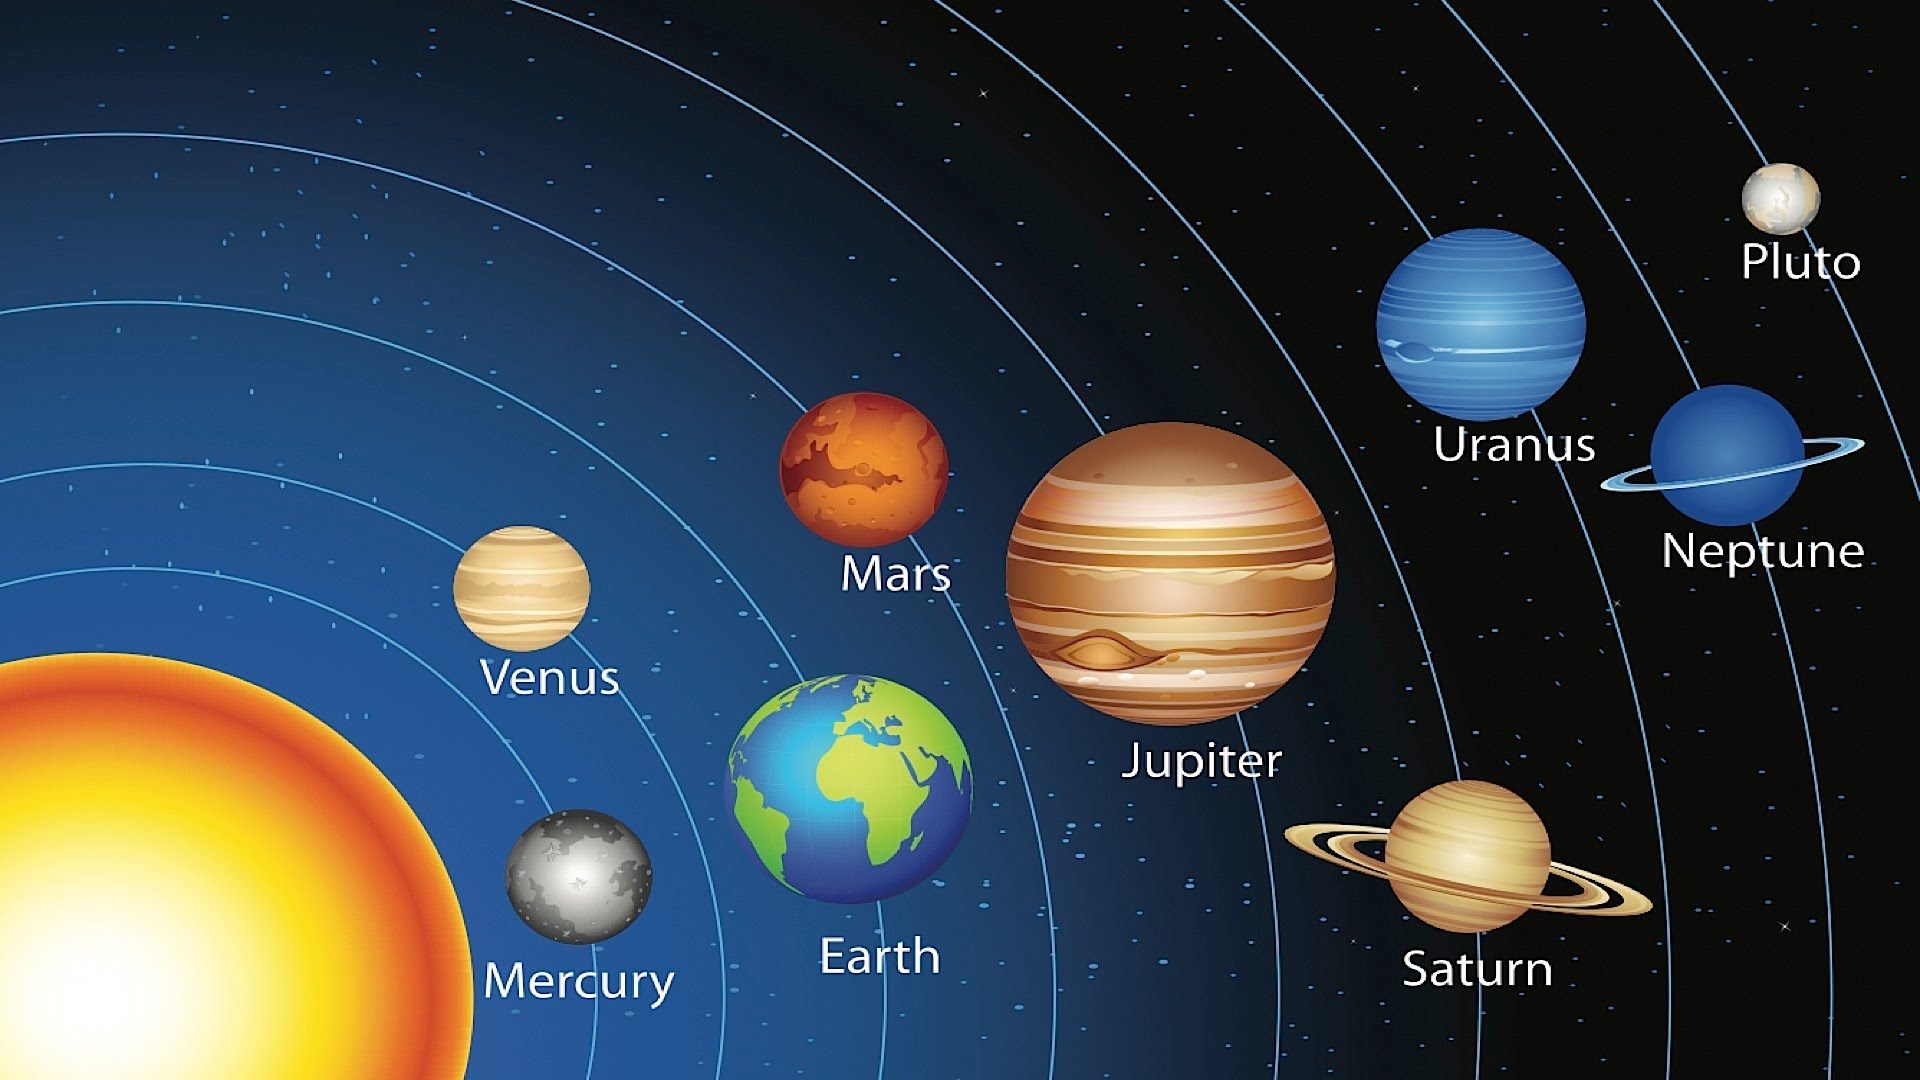 Some of the Best Pictures of the Planets